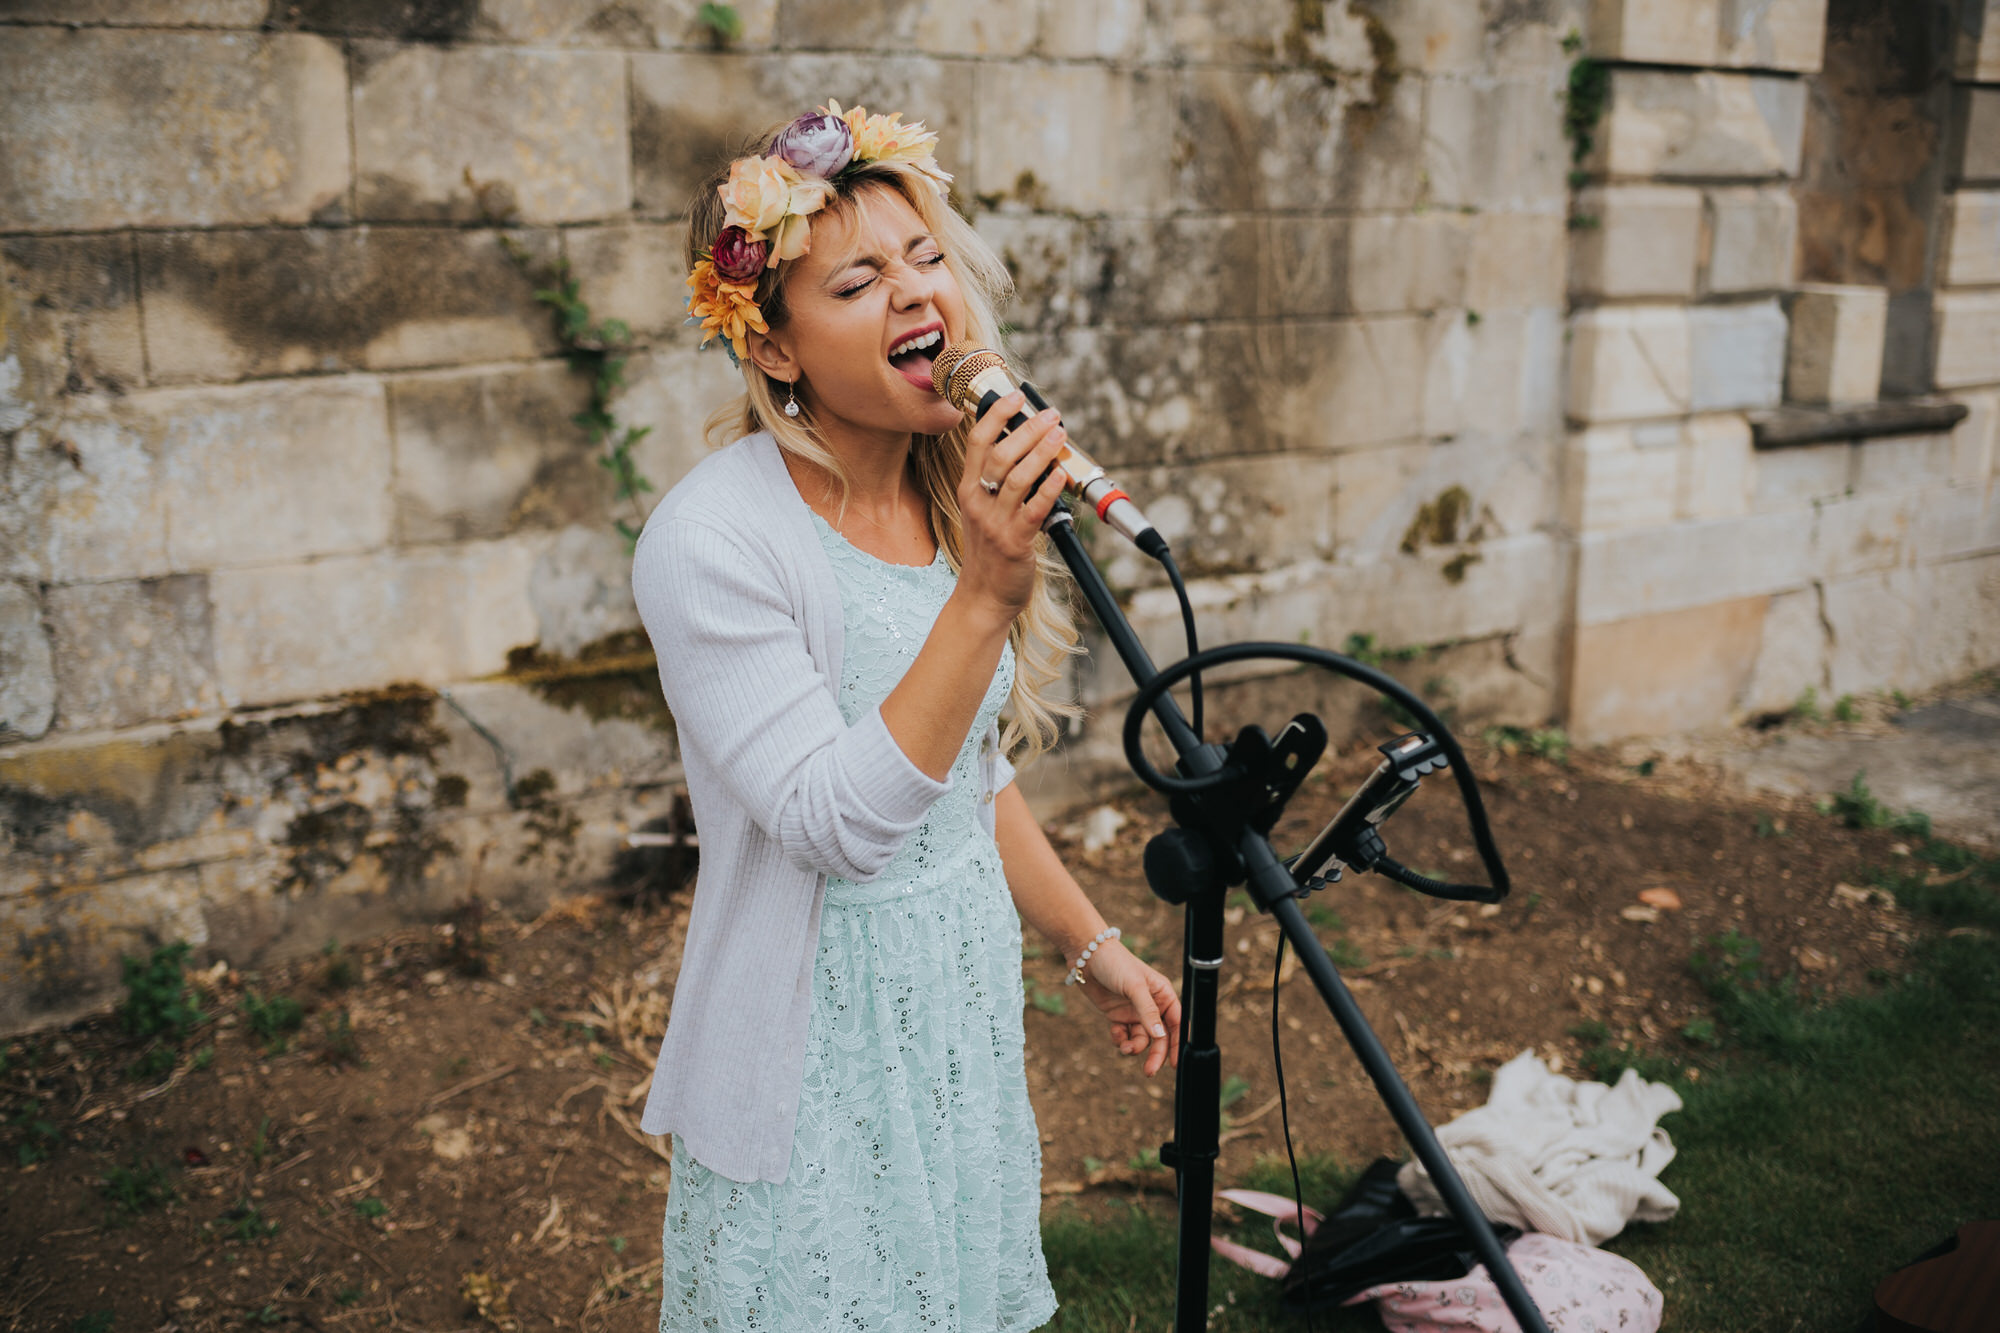 Singer at wedding